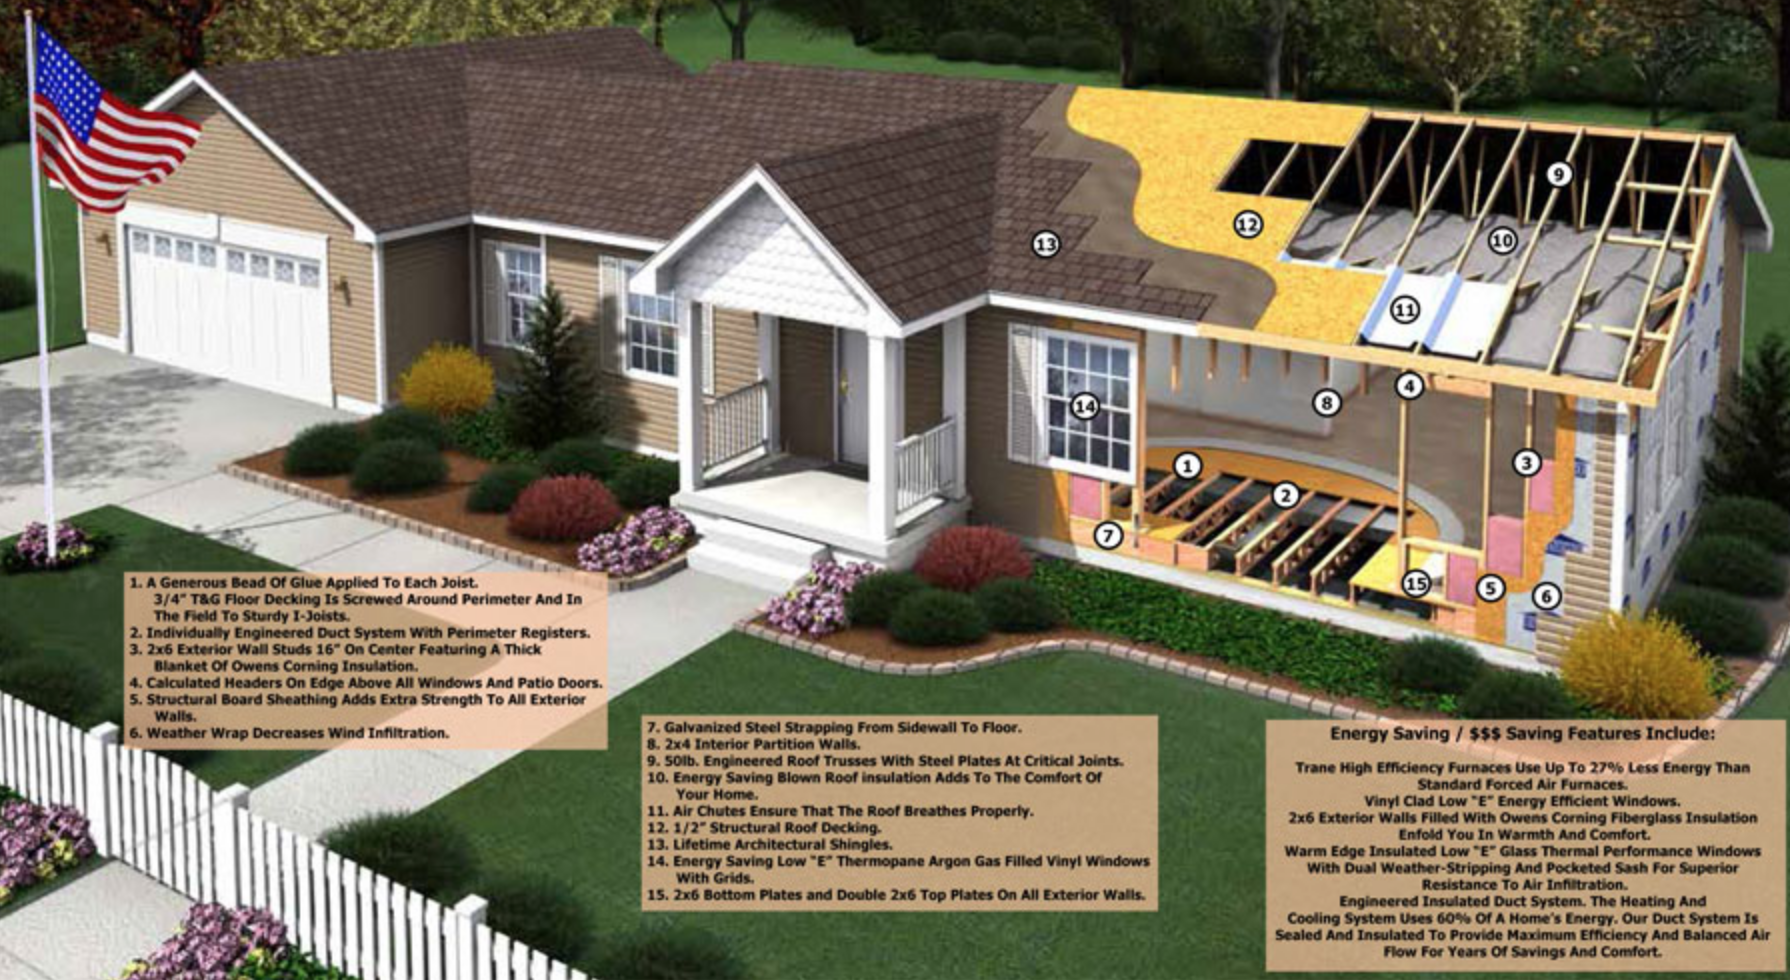 CLICK PHOTO TO ENLARGE AND READ DETAILS OF MODULAR HOME CONSTRUCTION